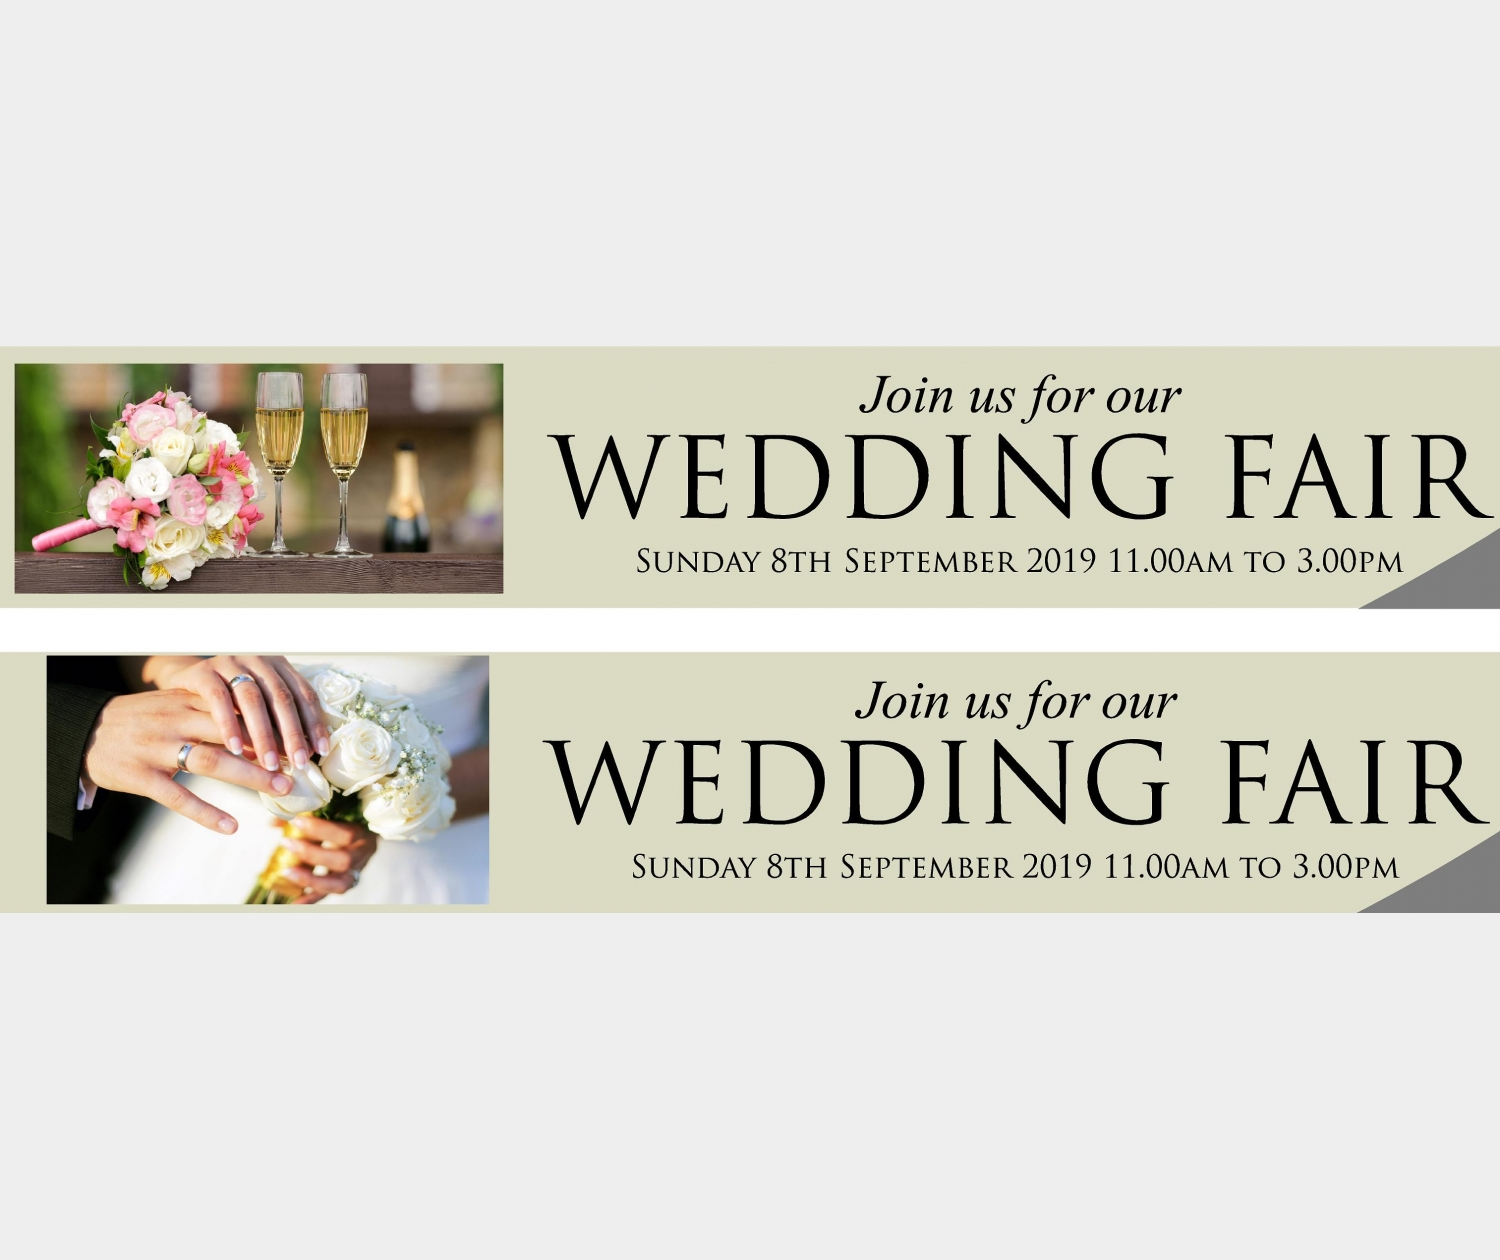 The Manchester Golf Club Wedding Fair